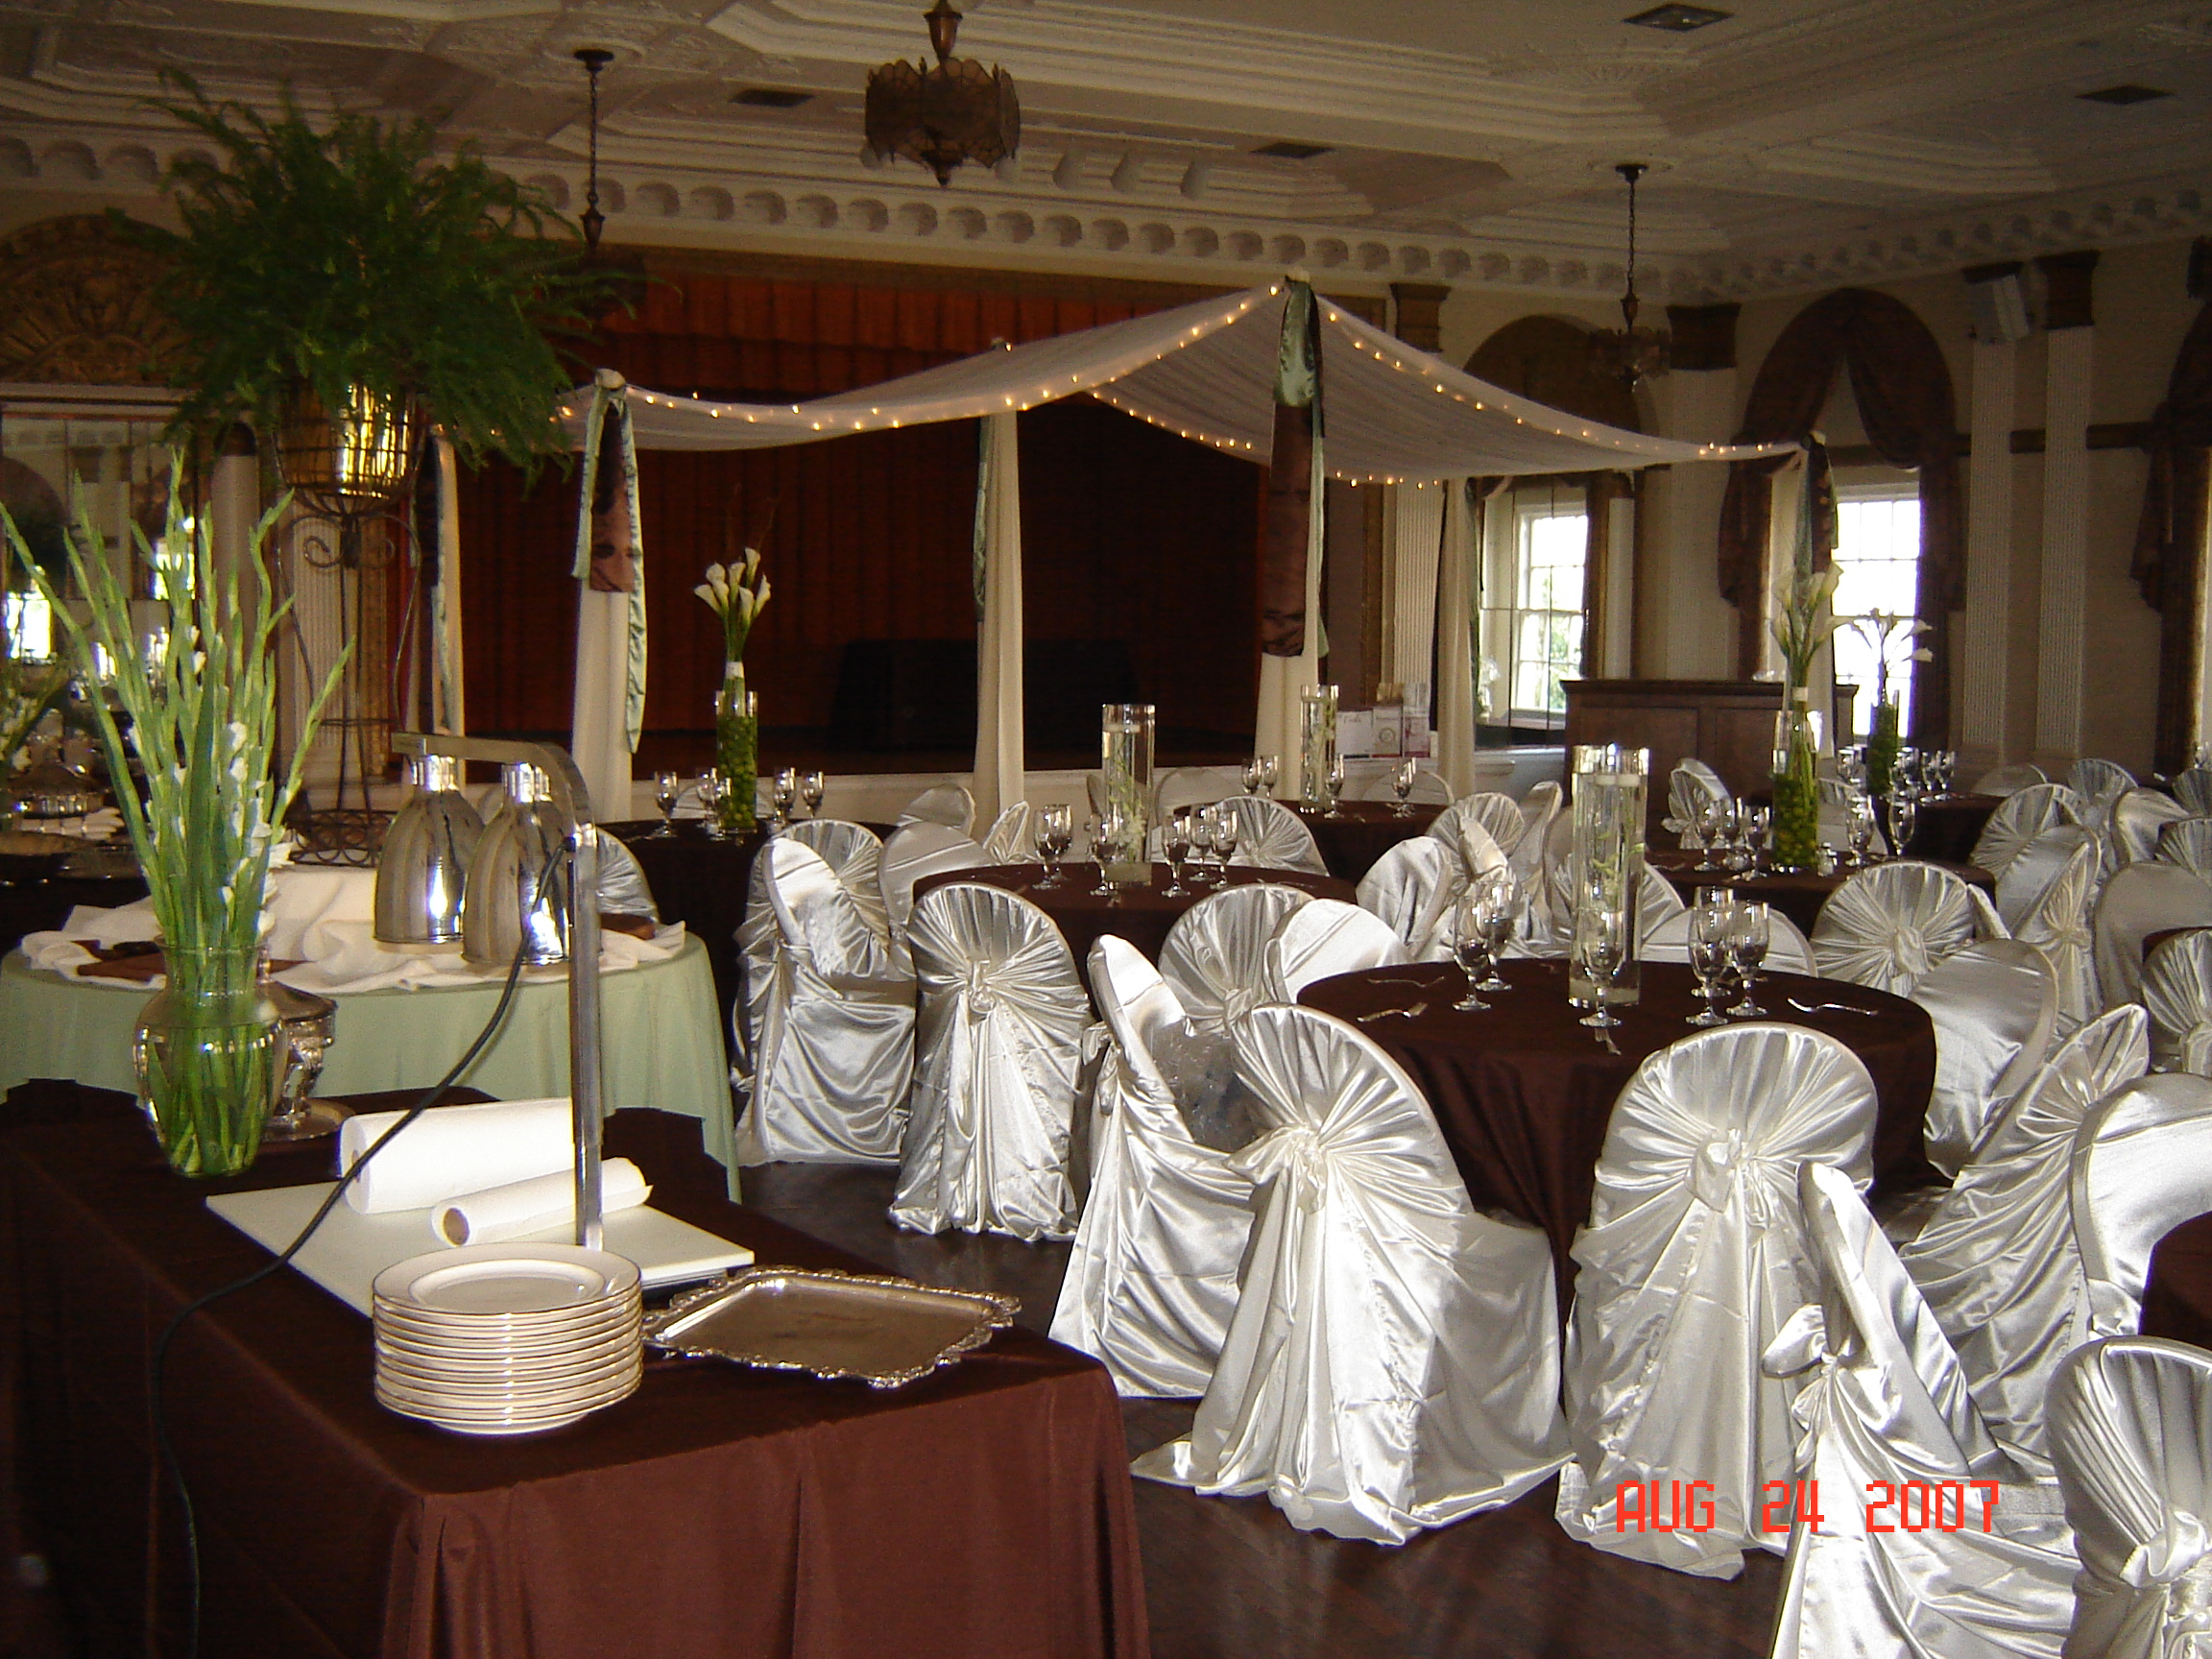 chair cover for rent wedding under floor protector simply elegant weddings rentals supplies fort worth texas tx